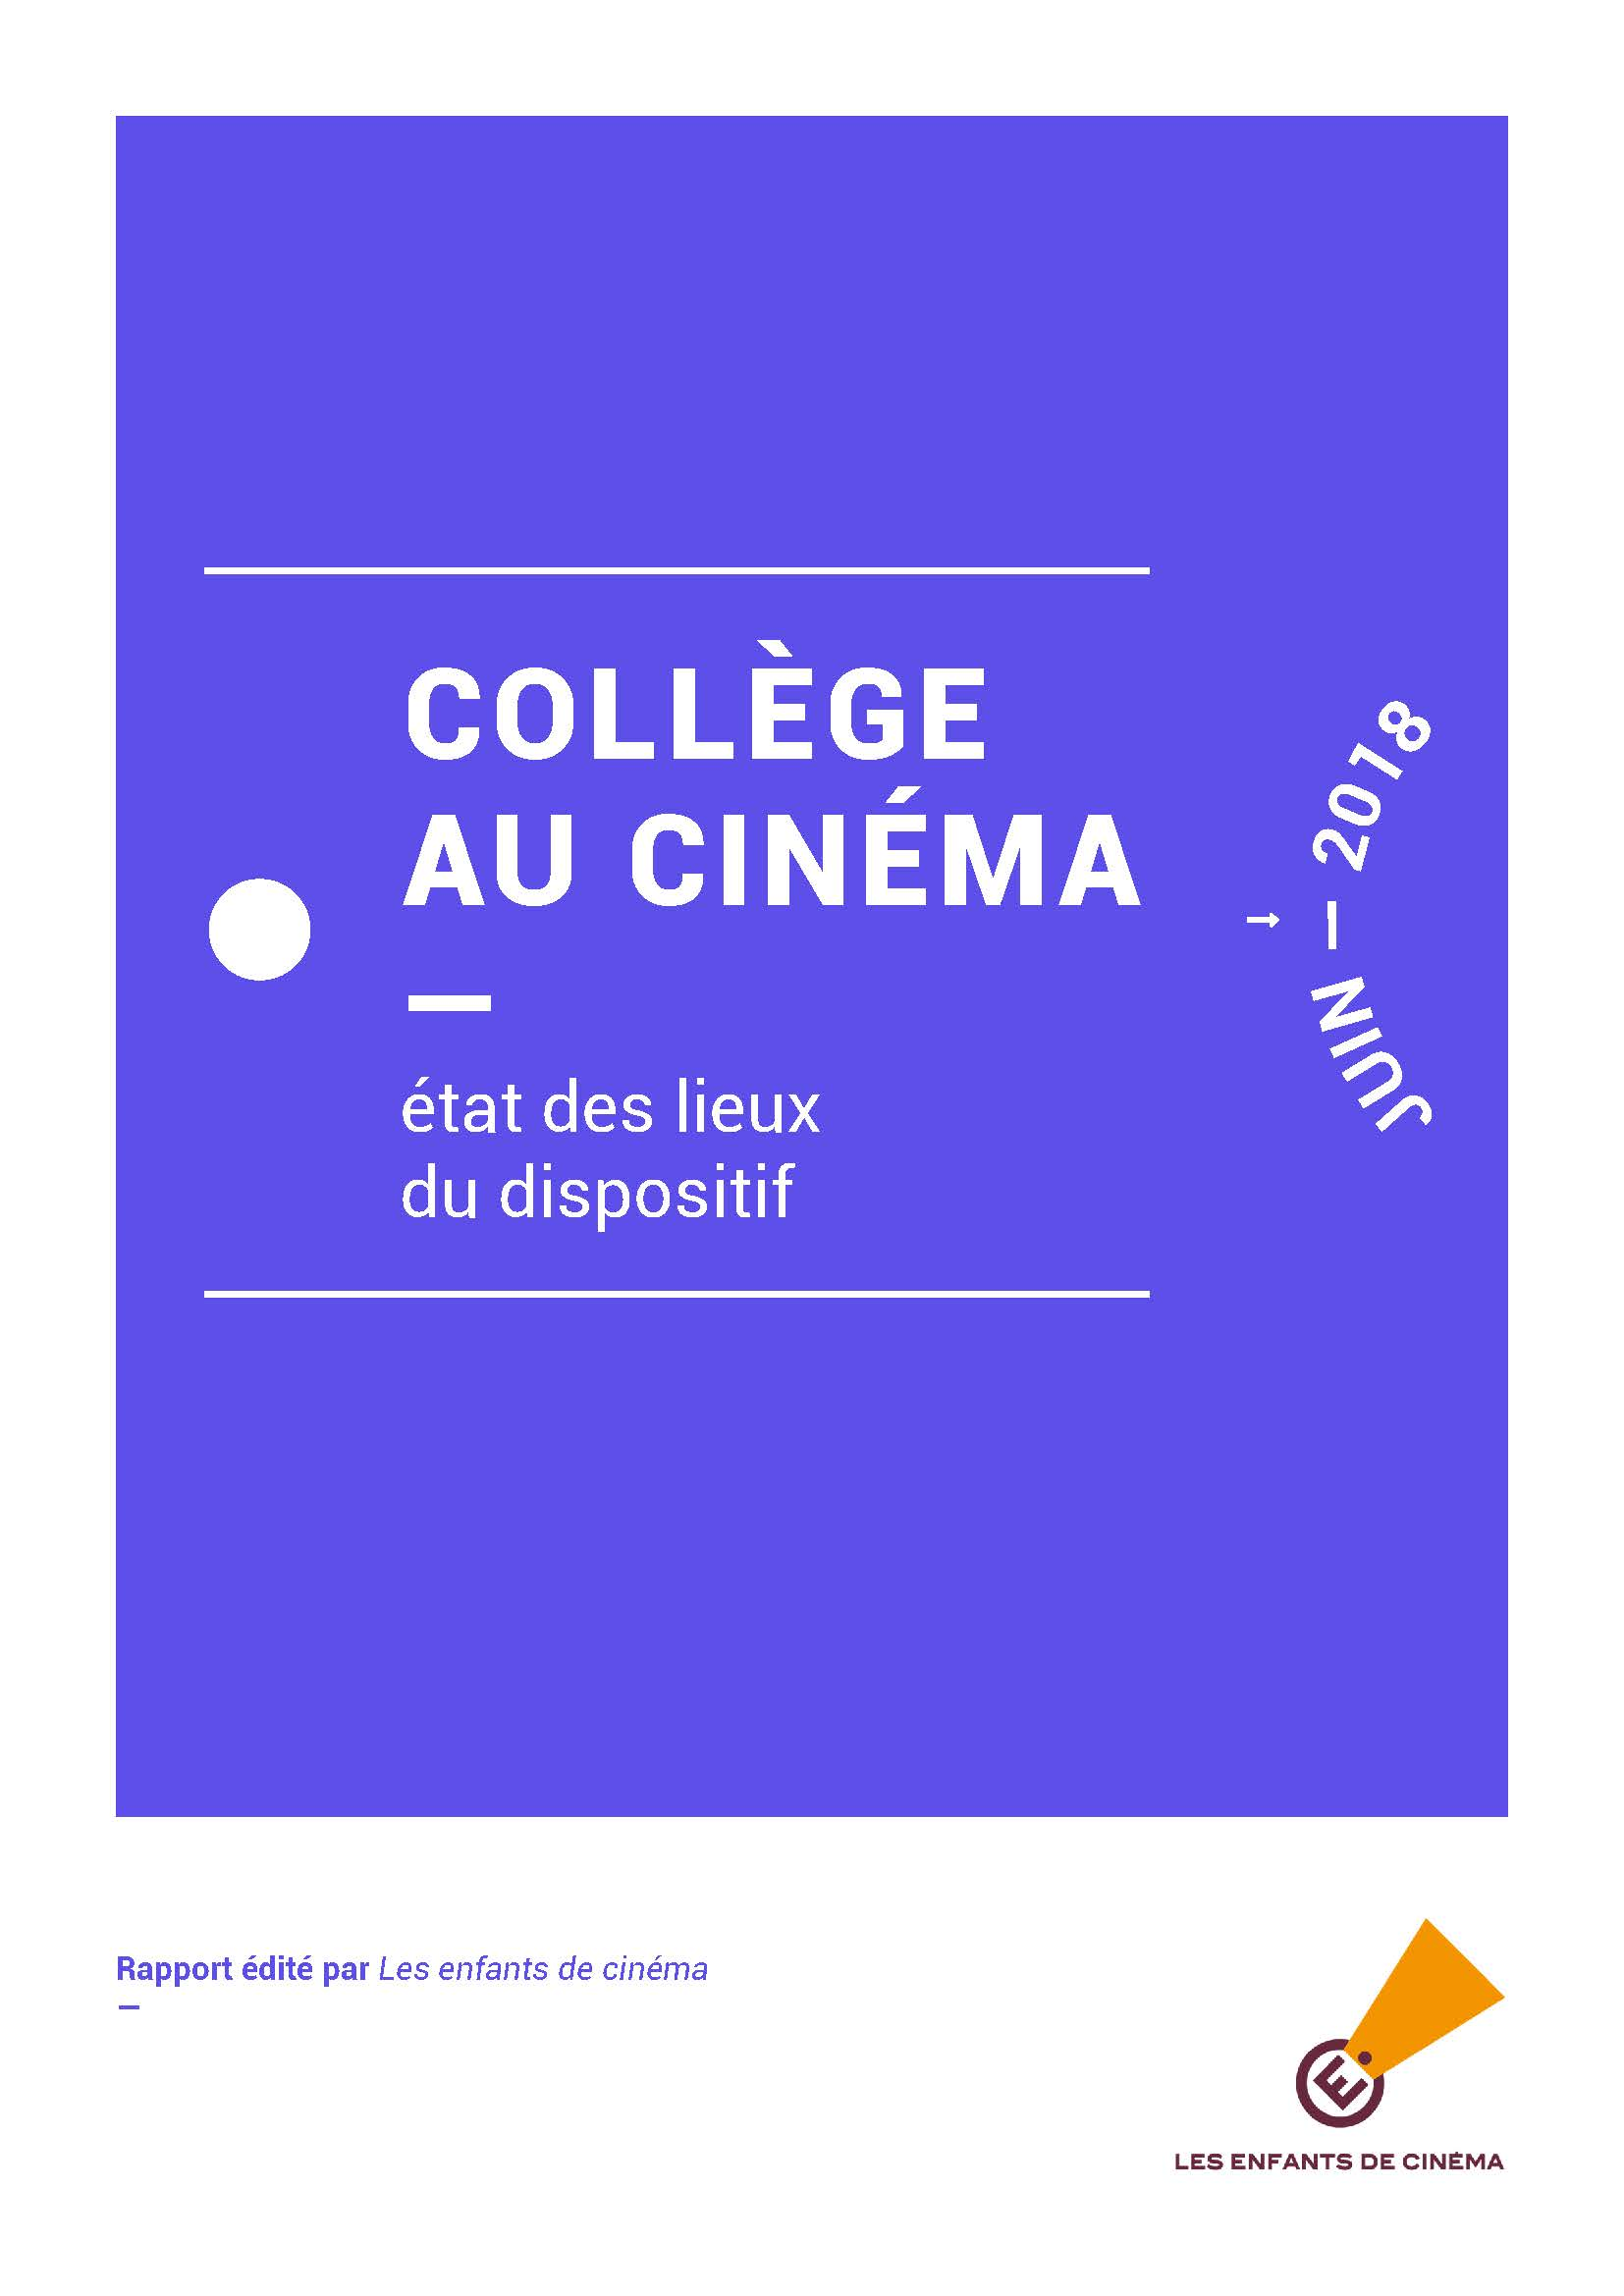 prostituee au cinema